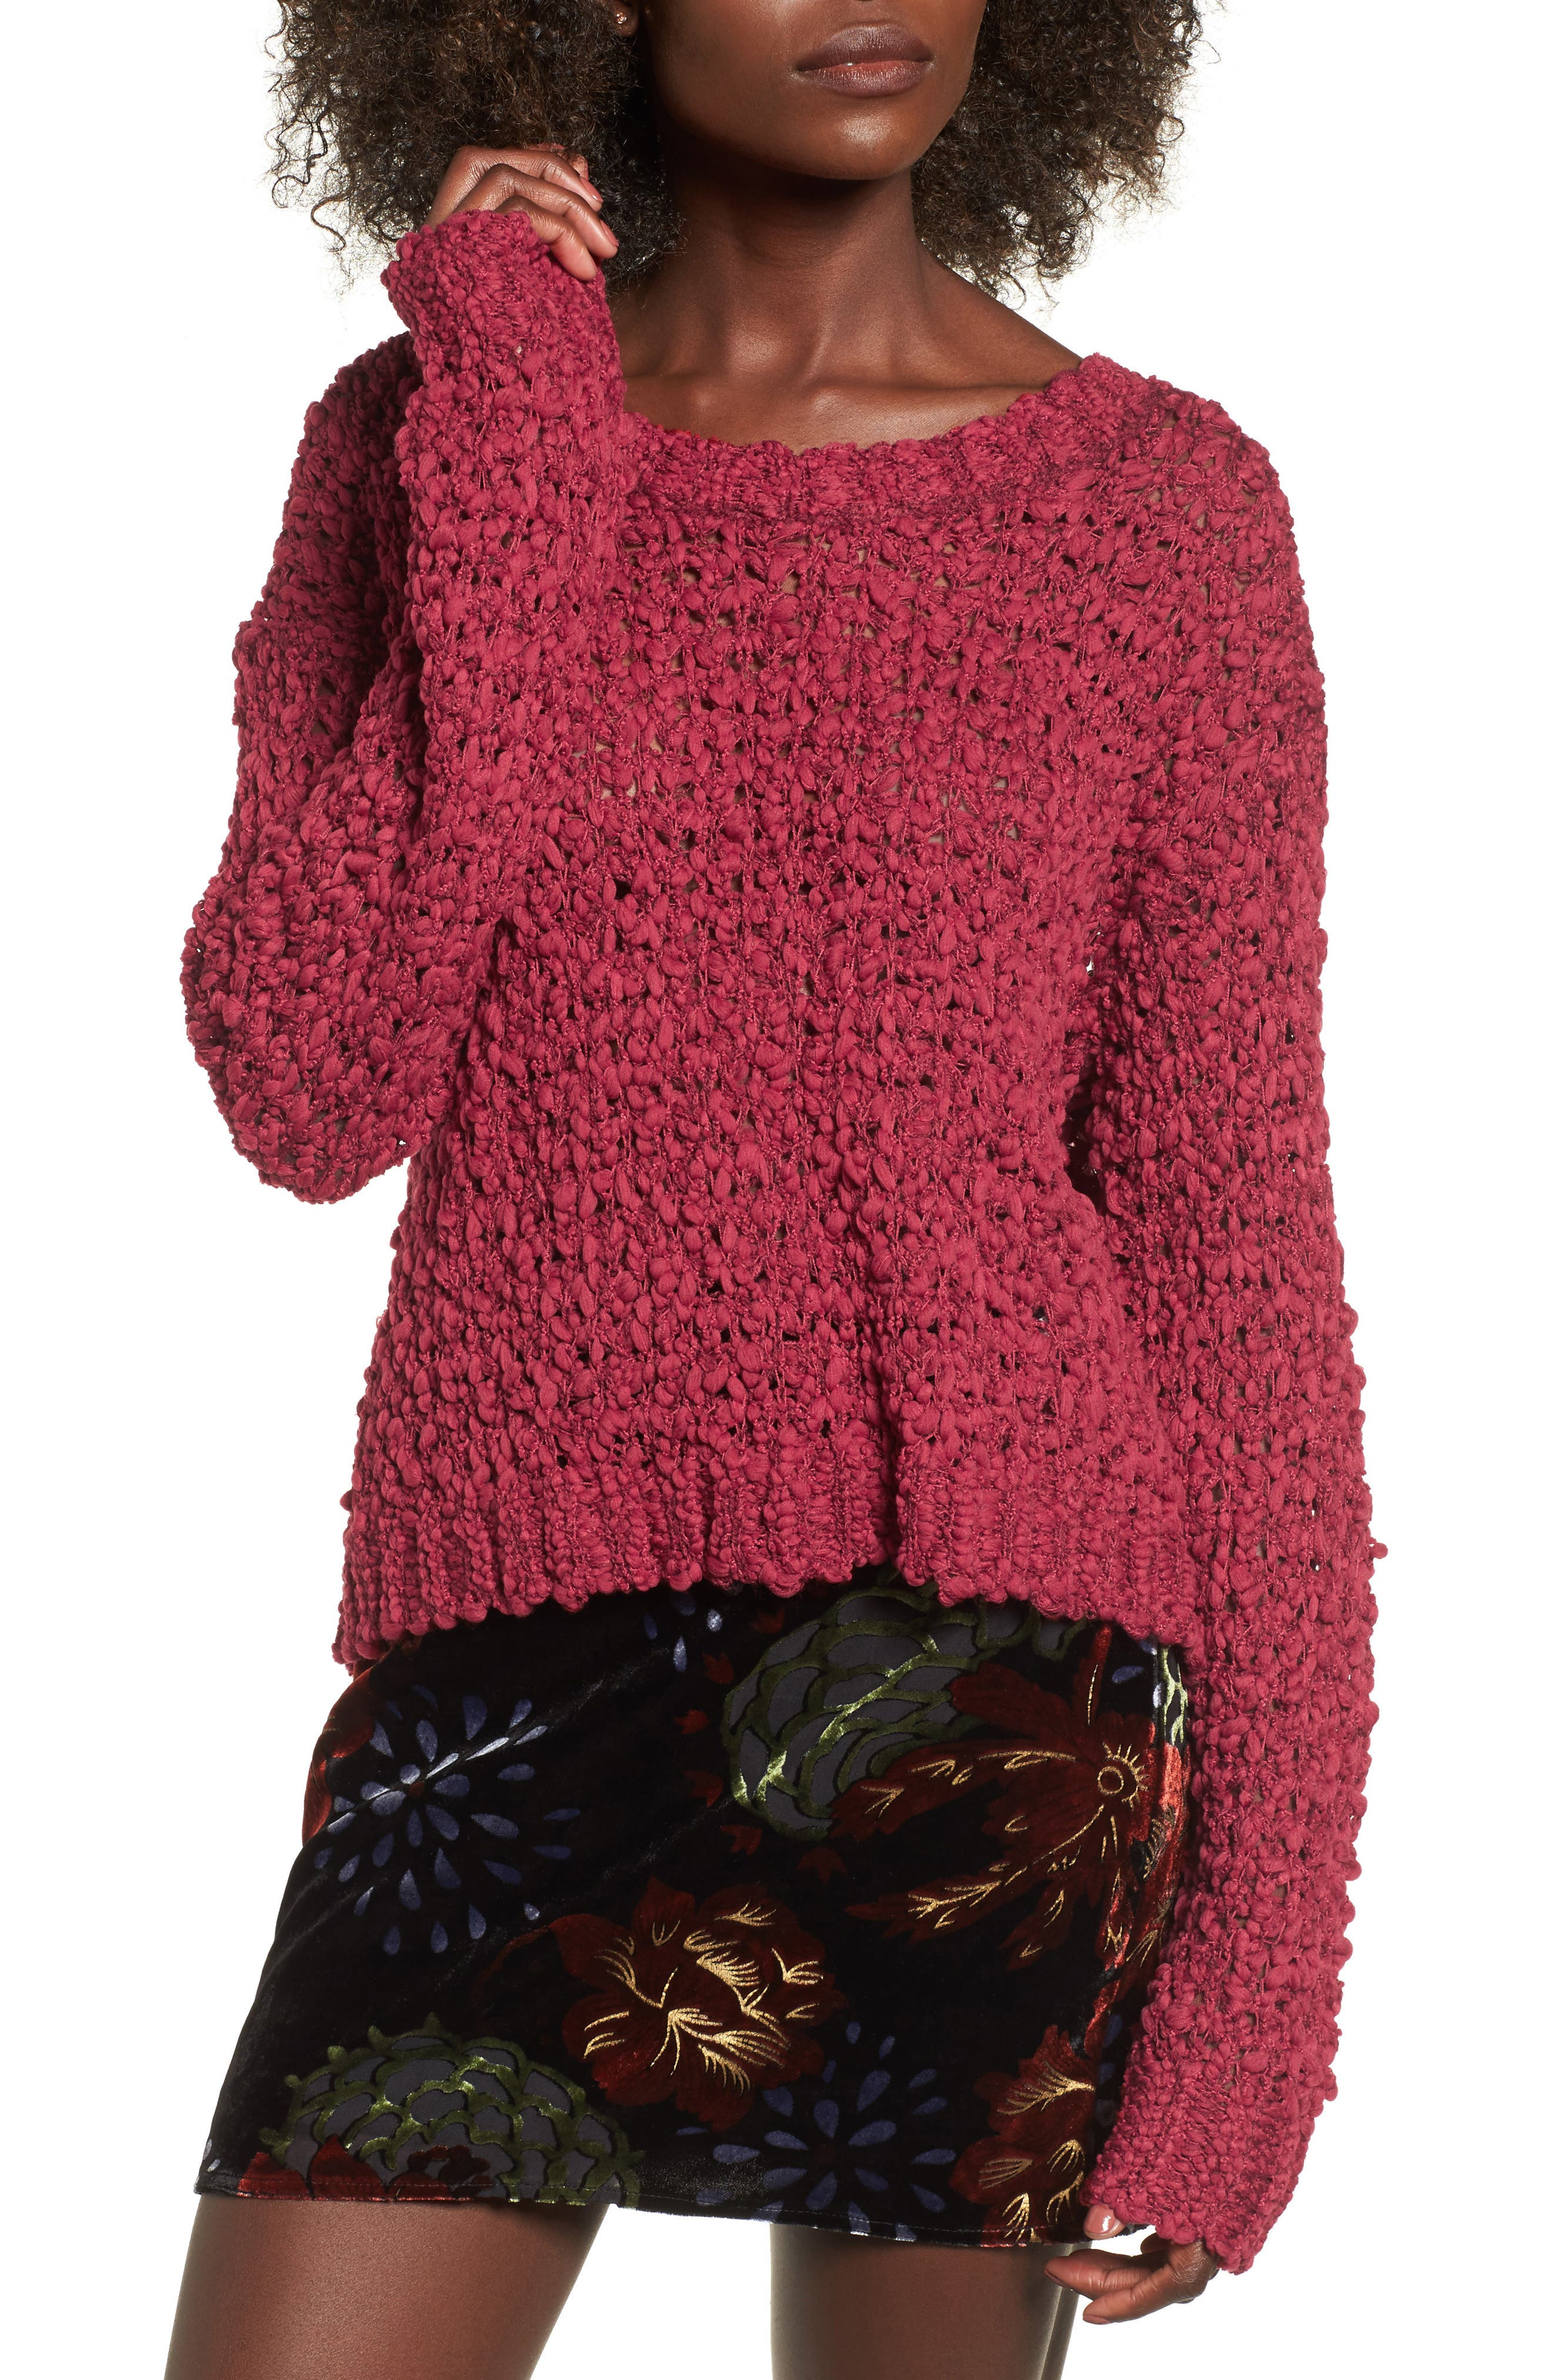 Band of Gypsies Knit Sweater